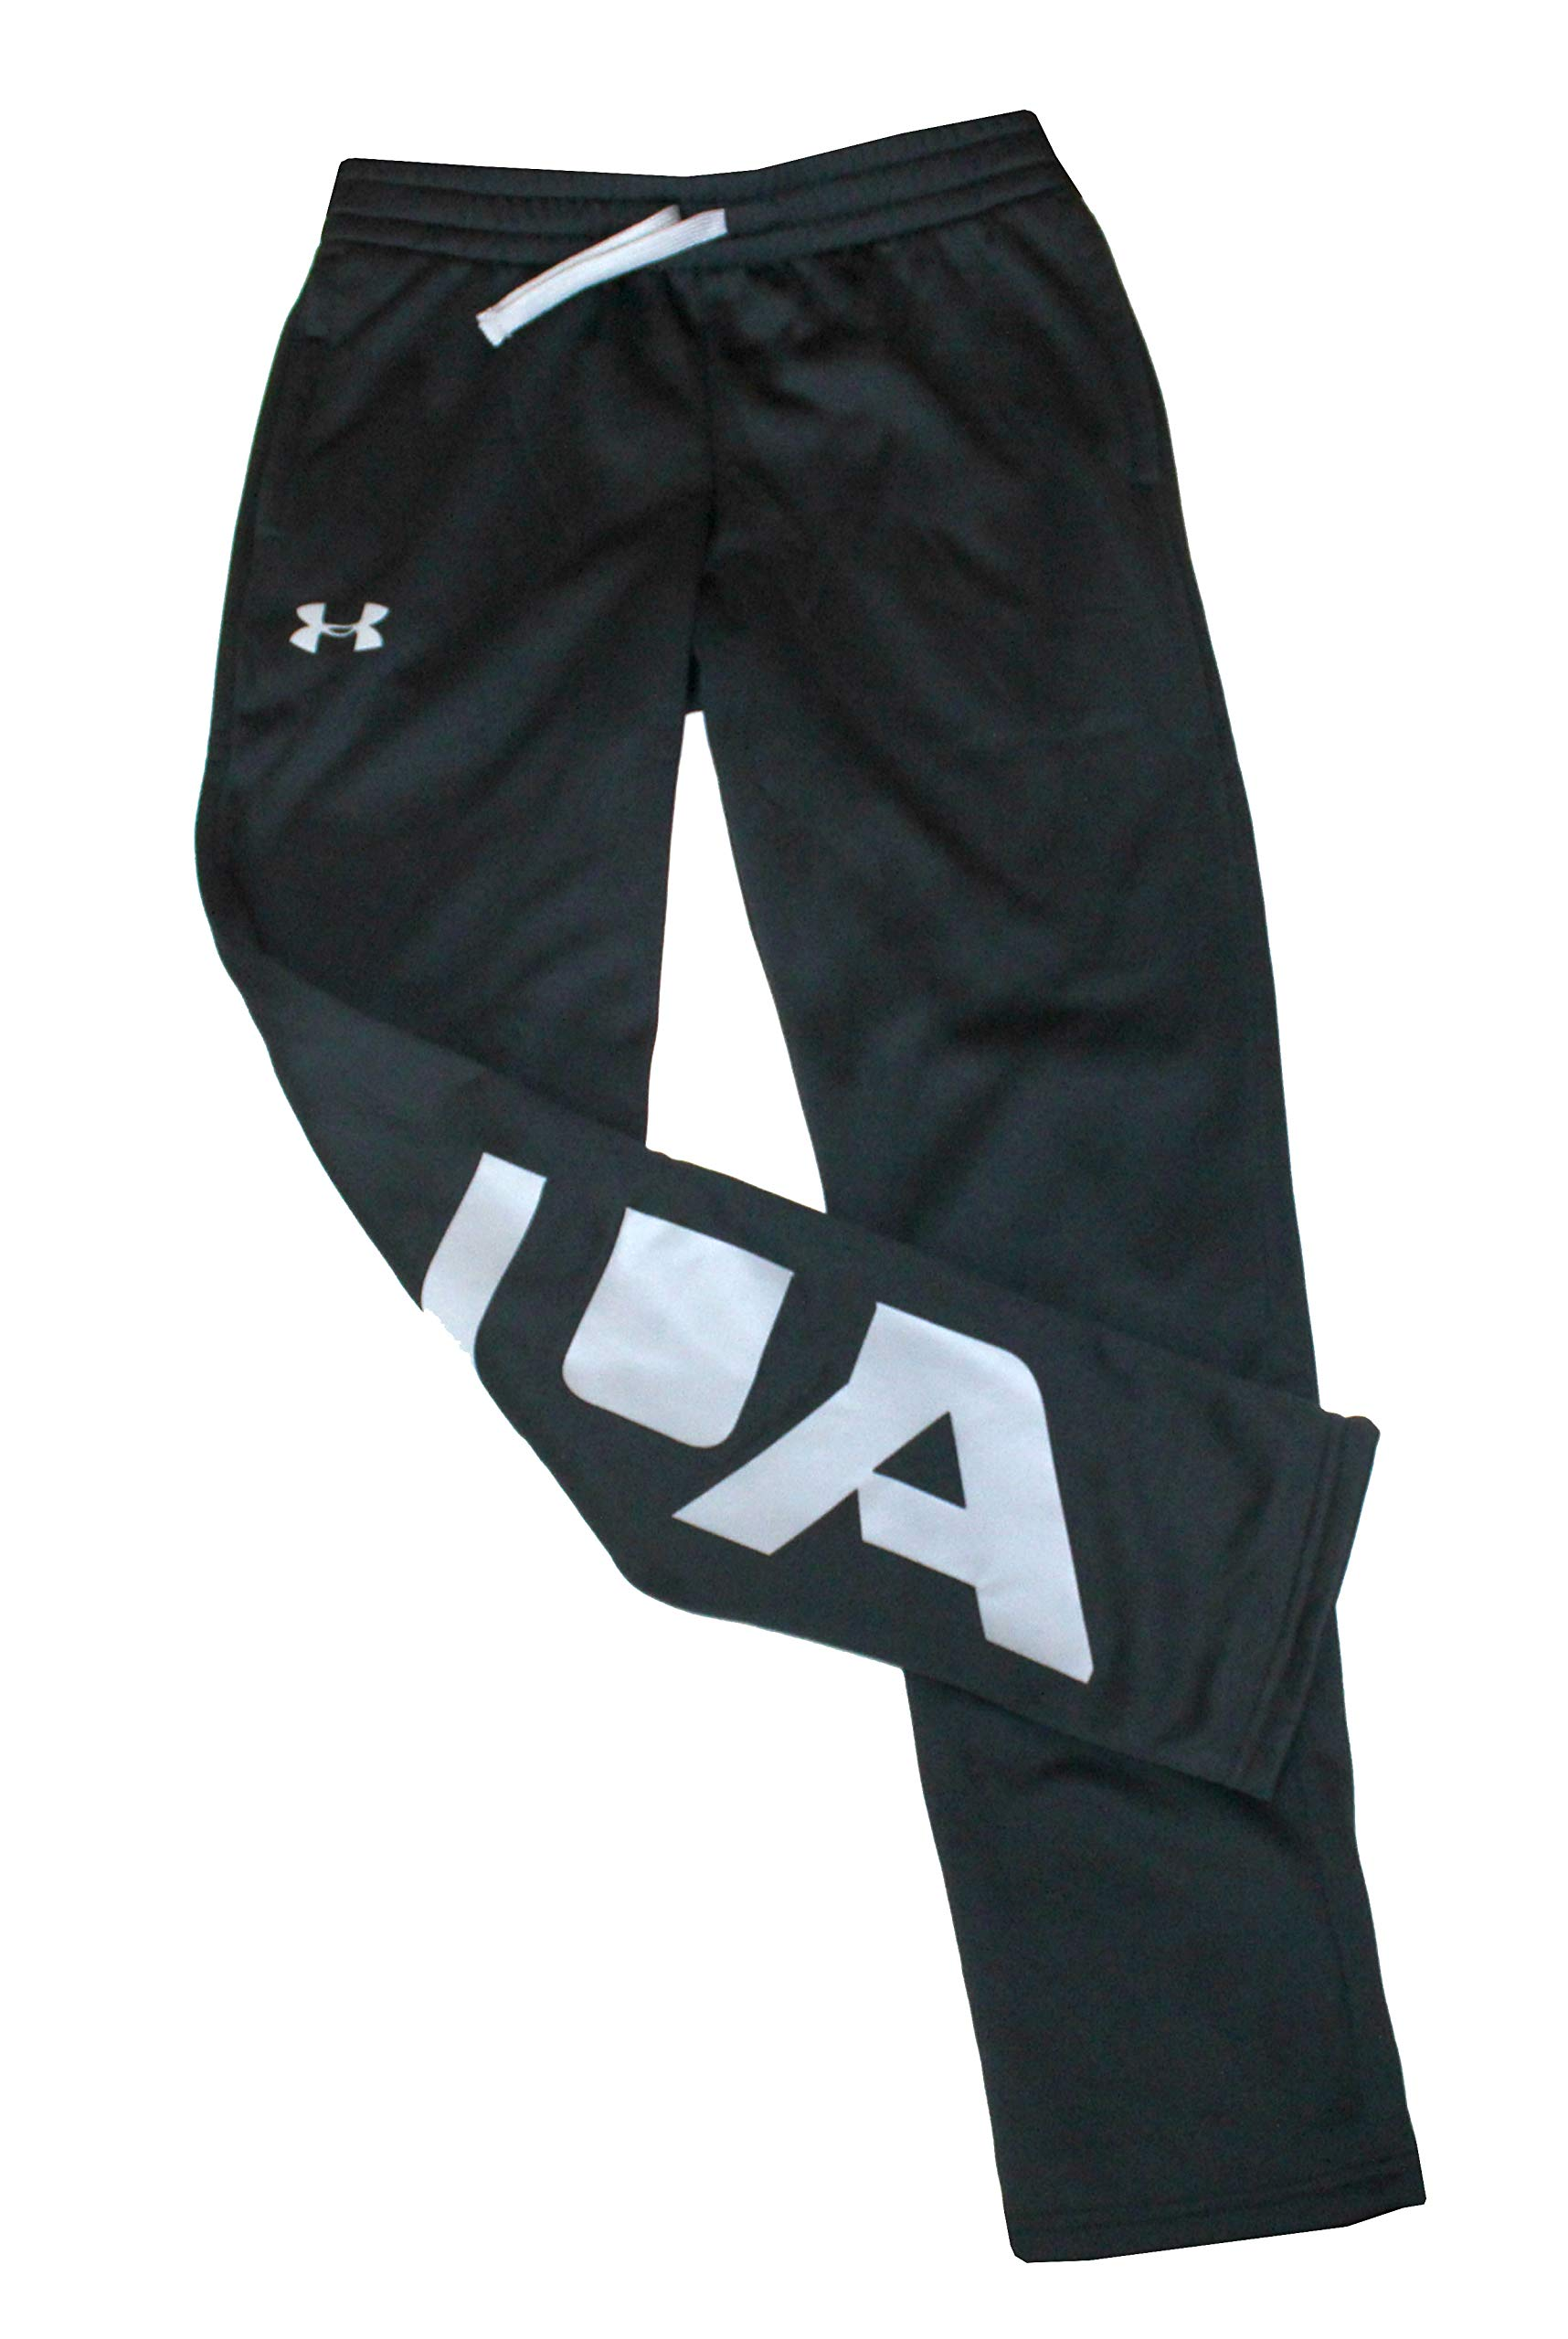 Under Armour Youth Boys Track Pants 1331651 (M 10/12)